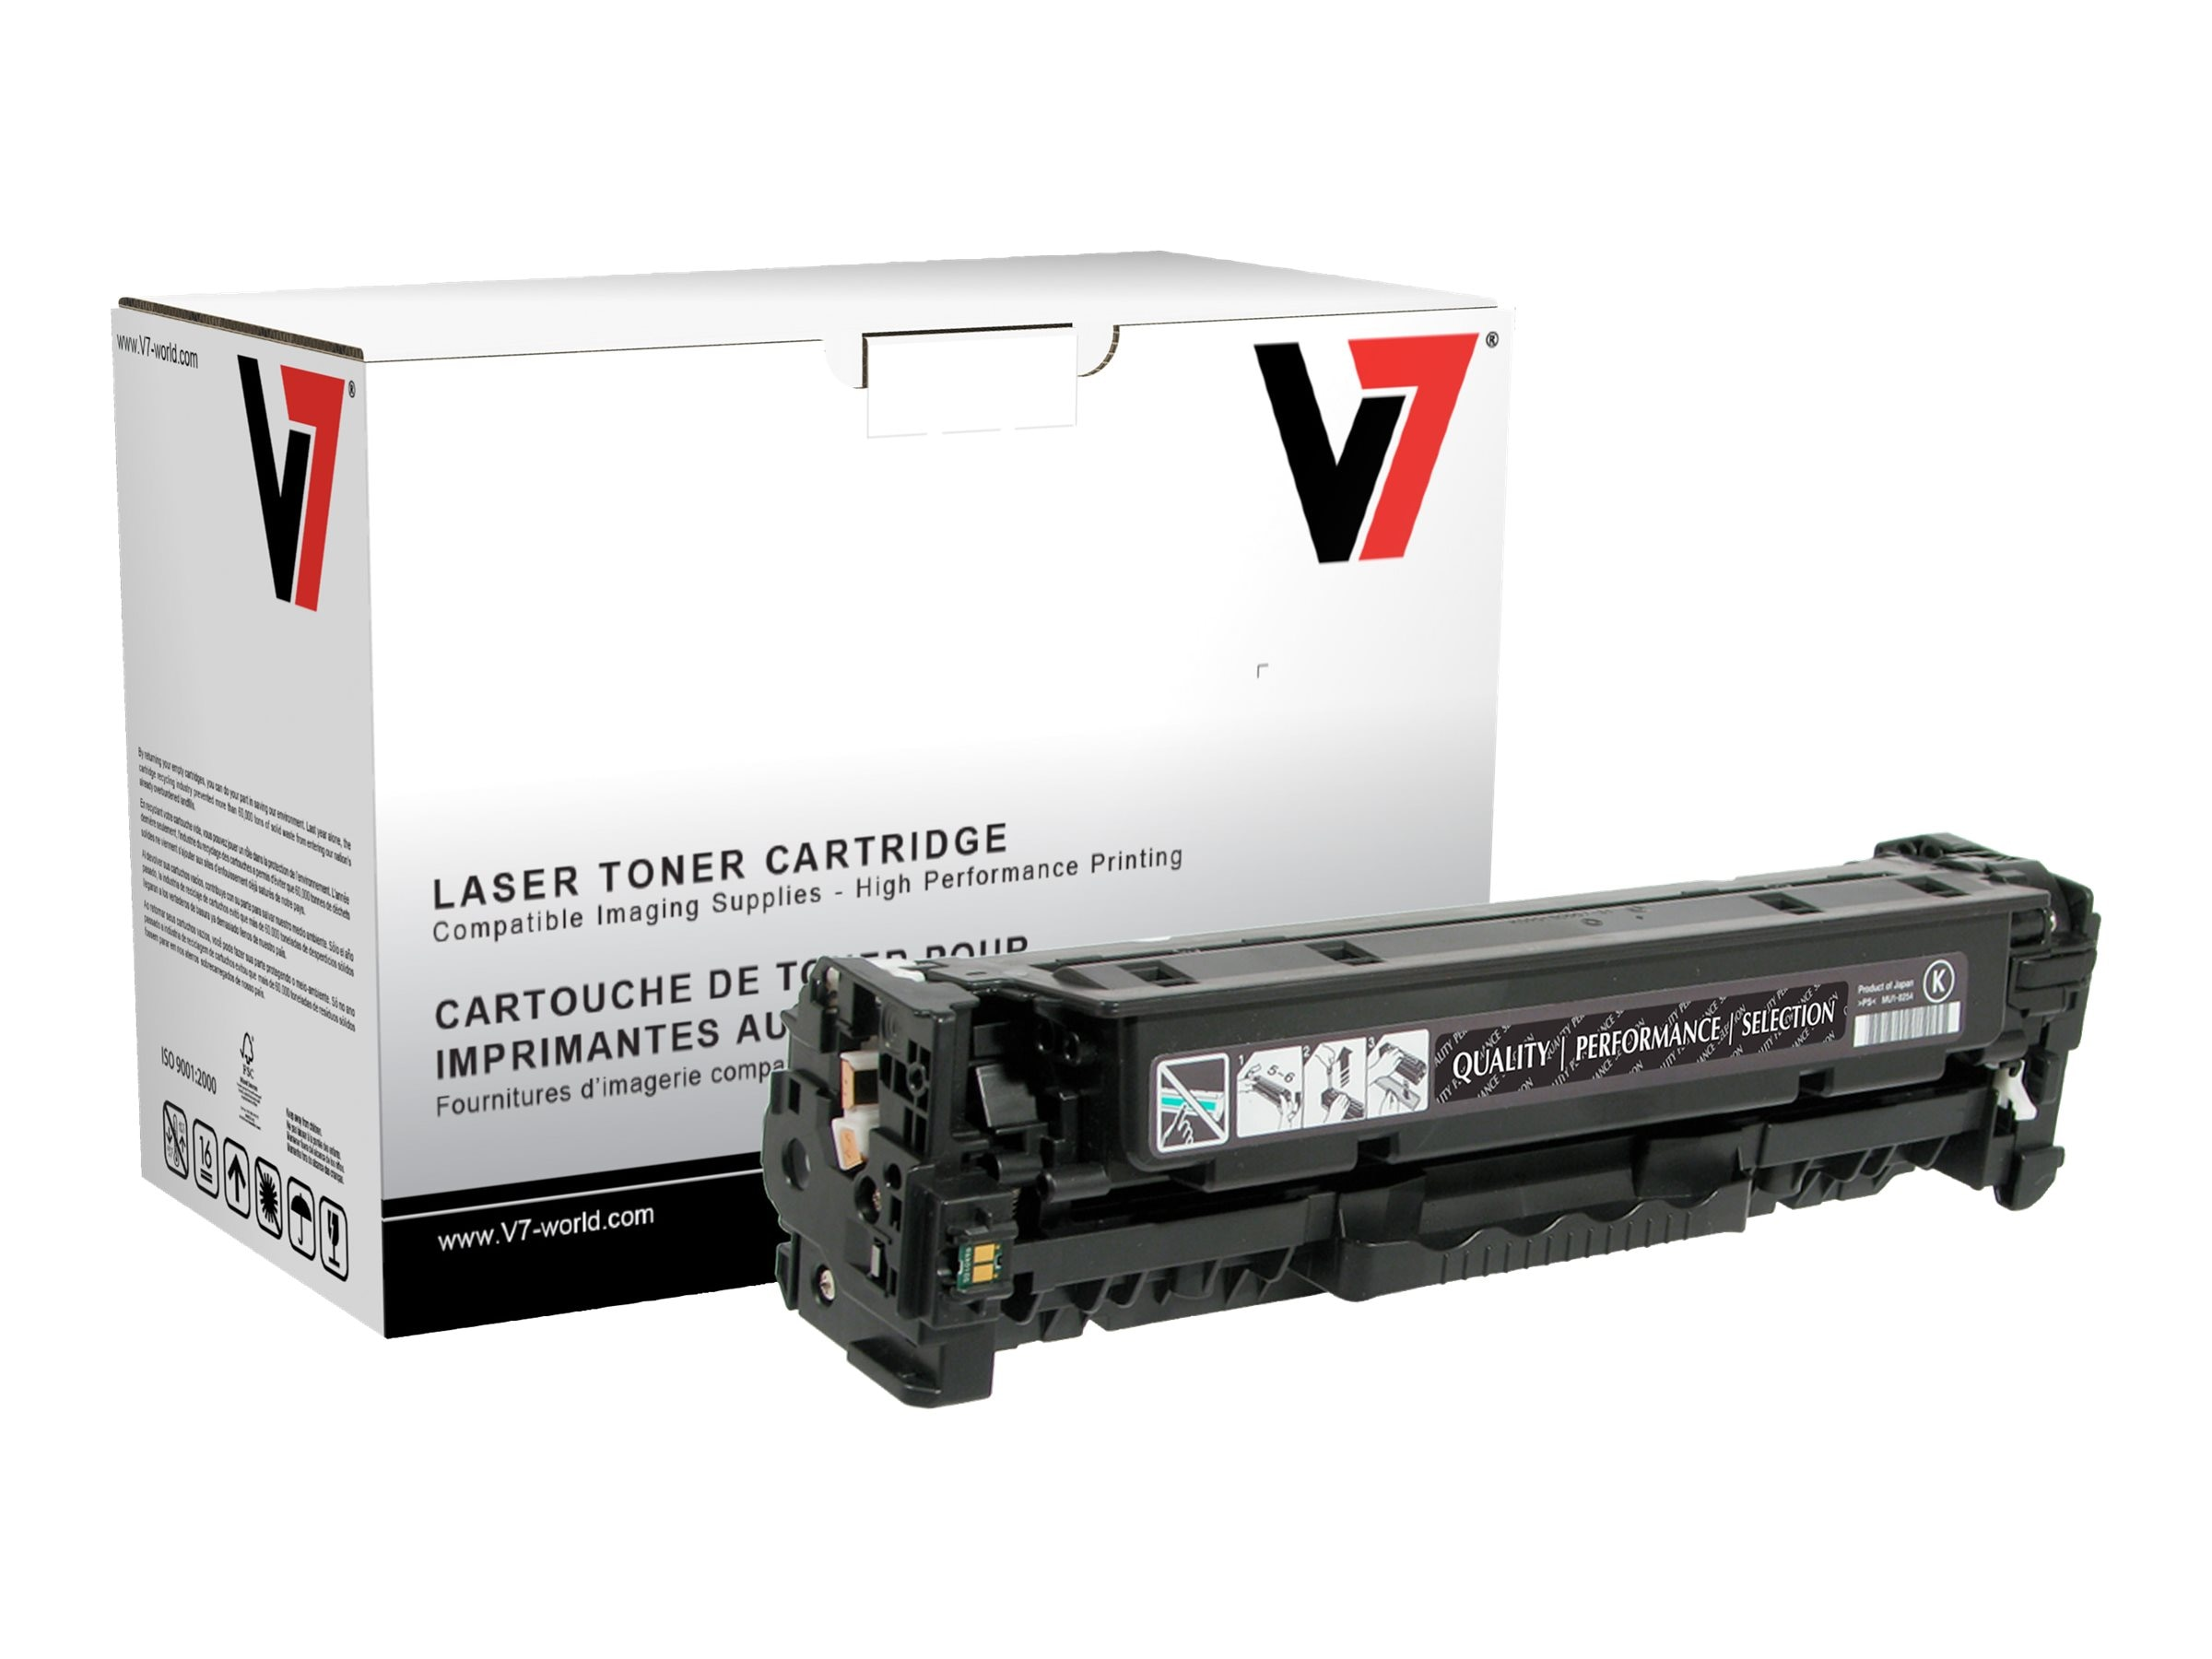 V7 CC530A Black Toner Cartridge for HP LaserJet CP2025 (TAA Compliant), THK22025